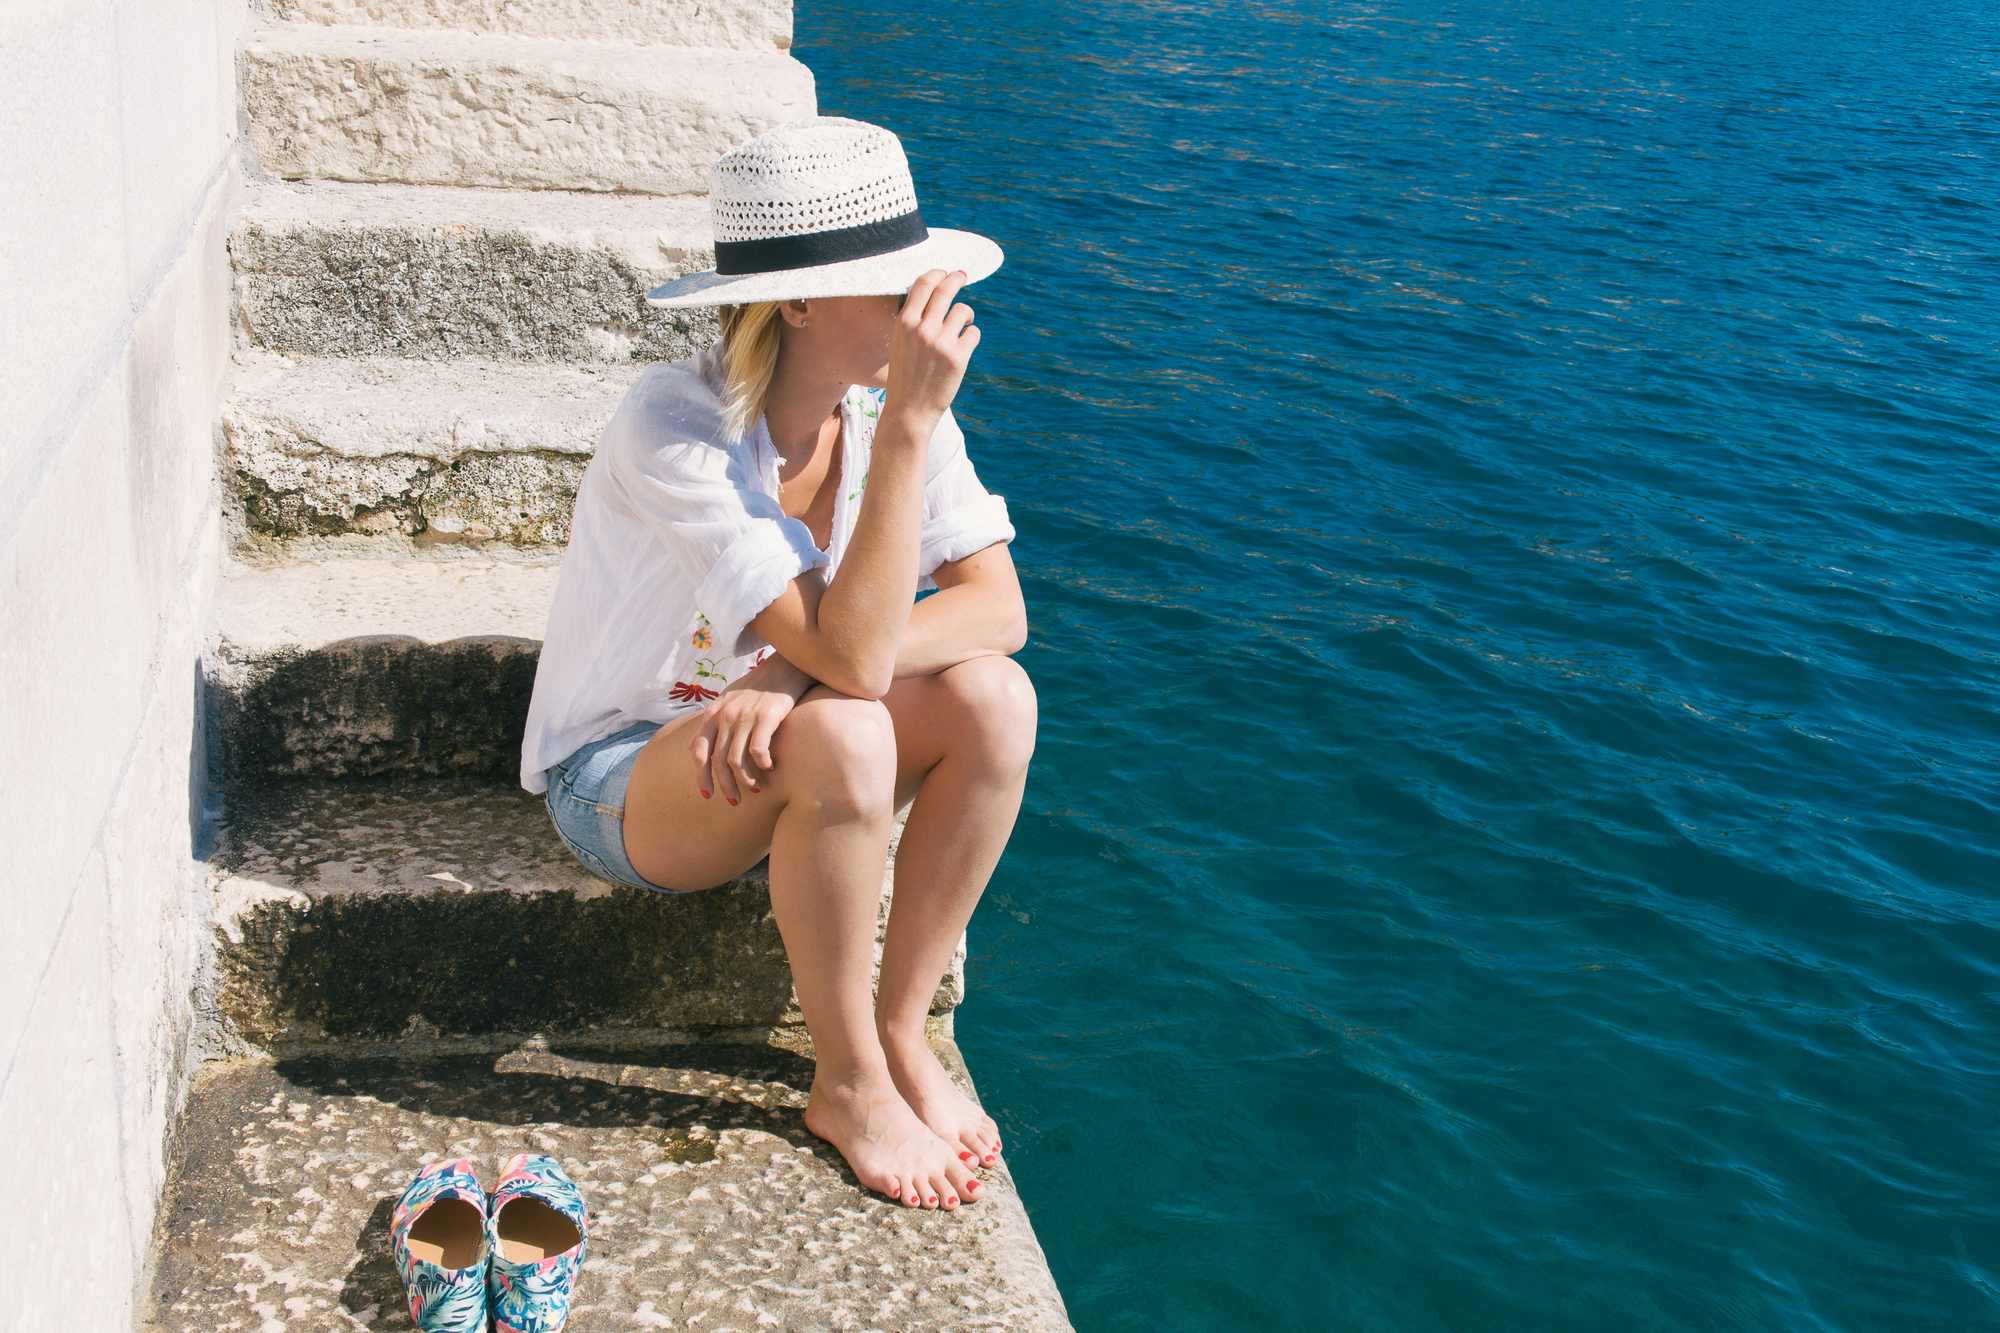 Where to go in Croatia for vacation